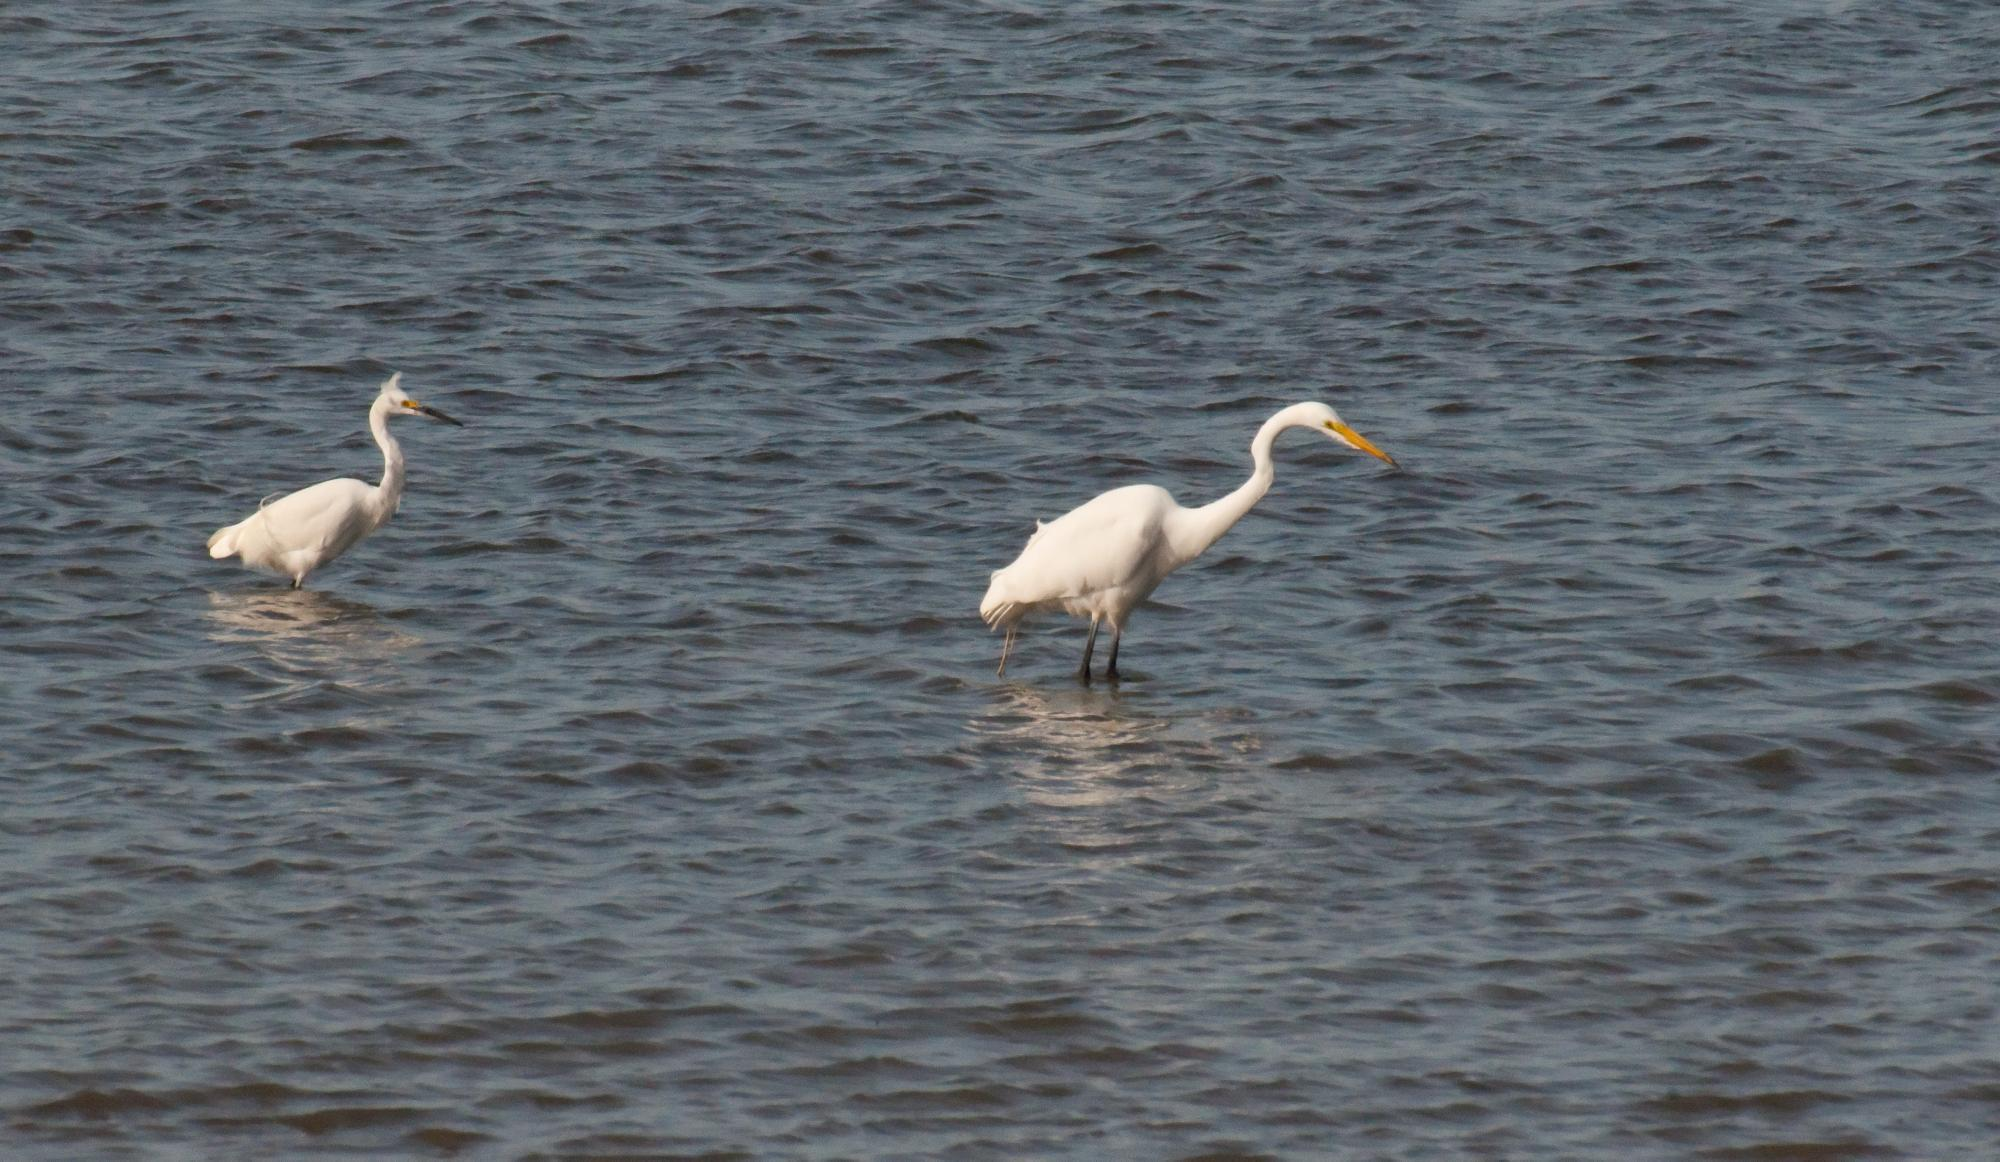 20100616_Snowy_Egret_Stalked_Great_Egret.jpg